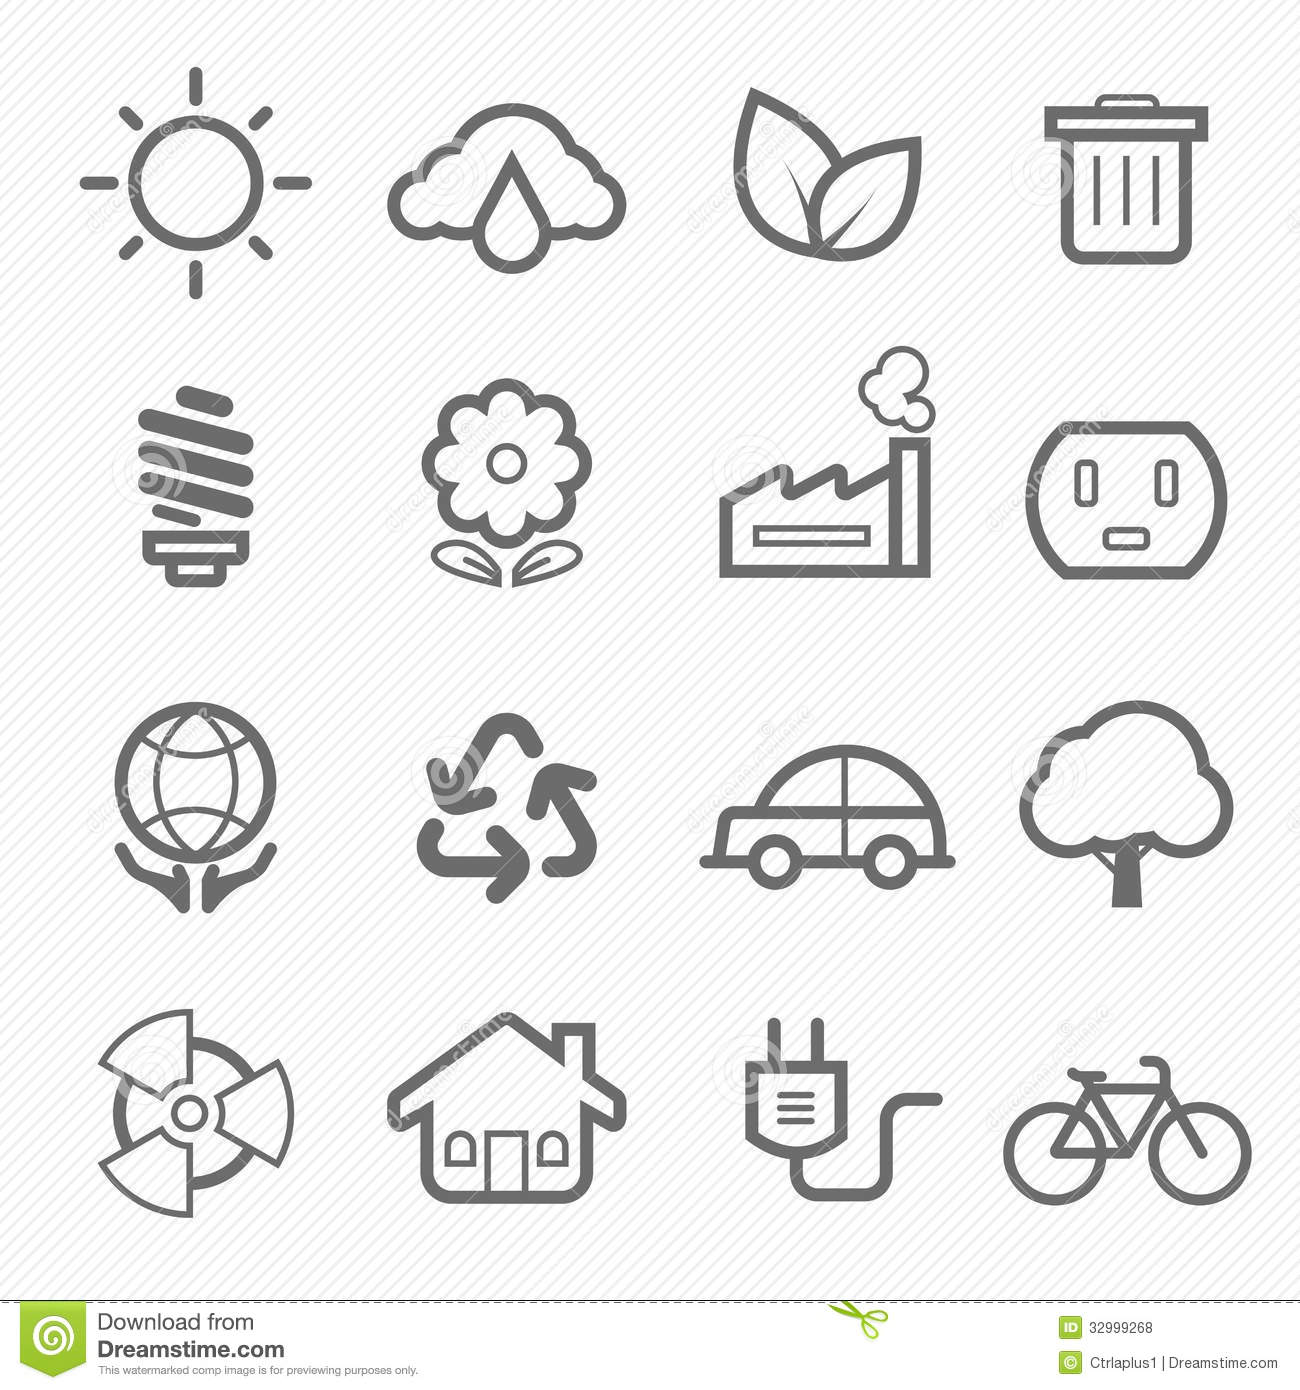 Home Outline Stroke Symbol Icons Royalty Free Stock